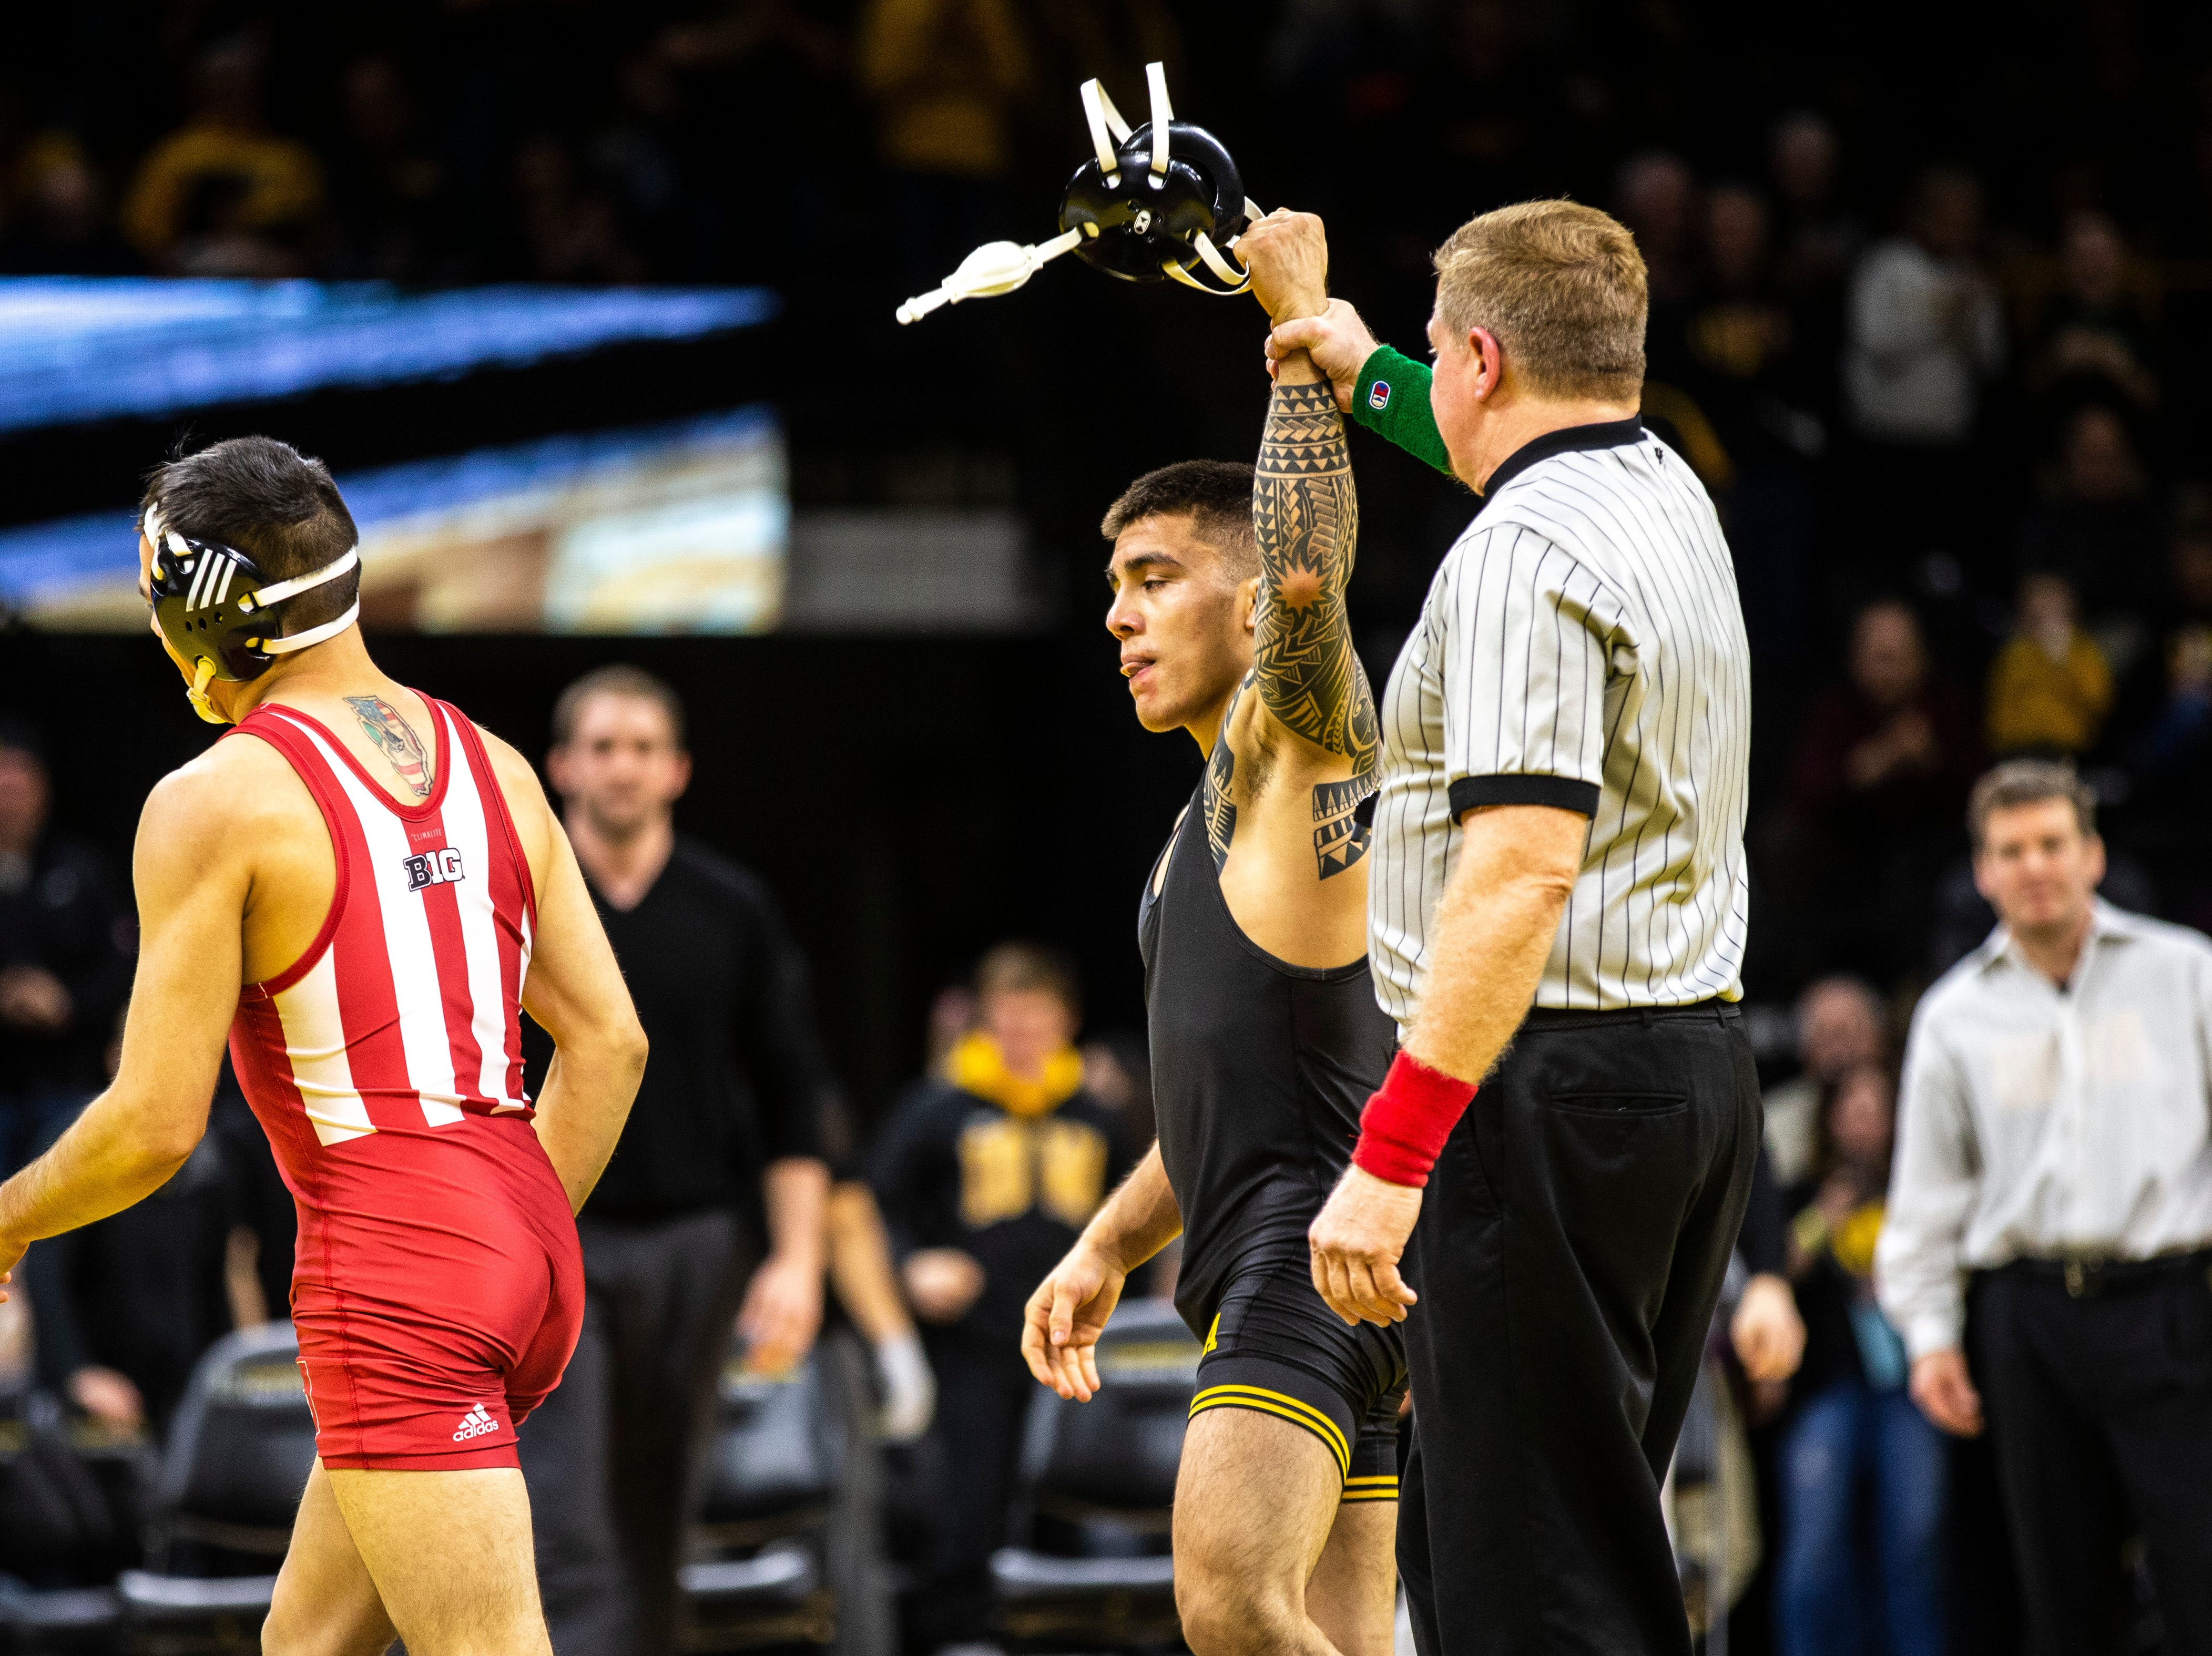 Iowa's Pat Lugo has his hand raised after pinning Indiana's Fernie Luigs at 149 during a NCAA Big Ten Conference wrestling dual on Friday, Feb. 15, 2019 at Carver-Hawkeye Arena in Iowa City, Iowa.